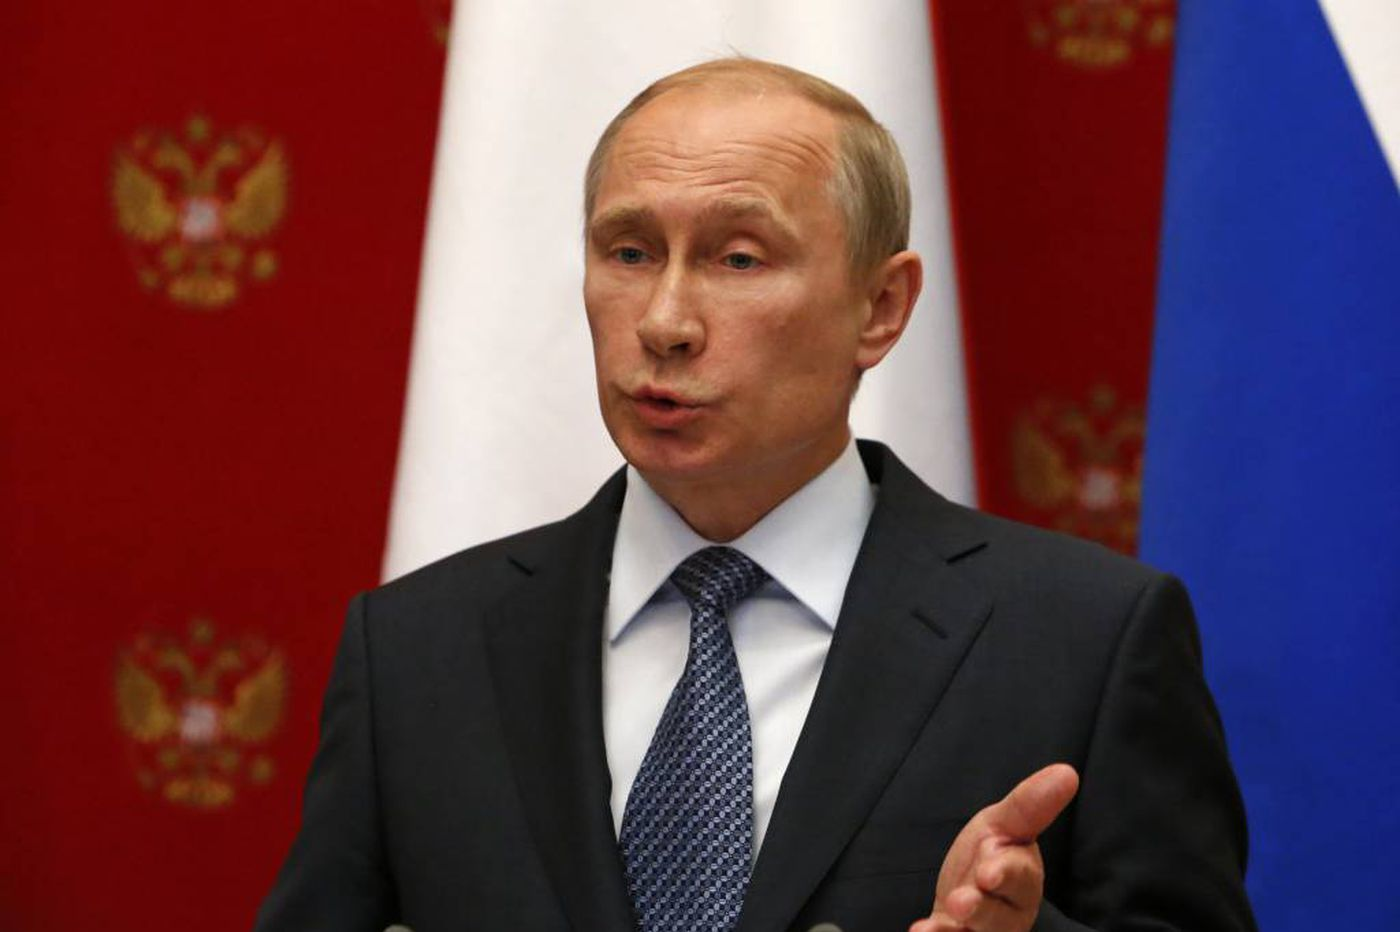 Putin tells separatists to back off Ukraine referendum